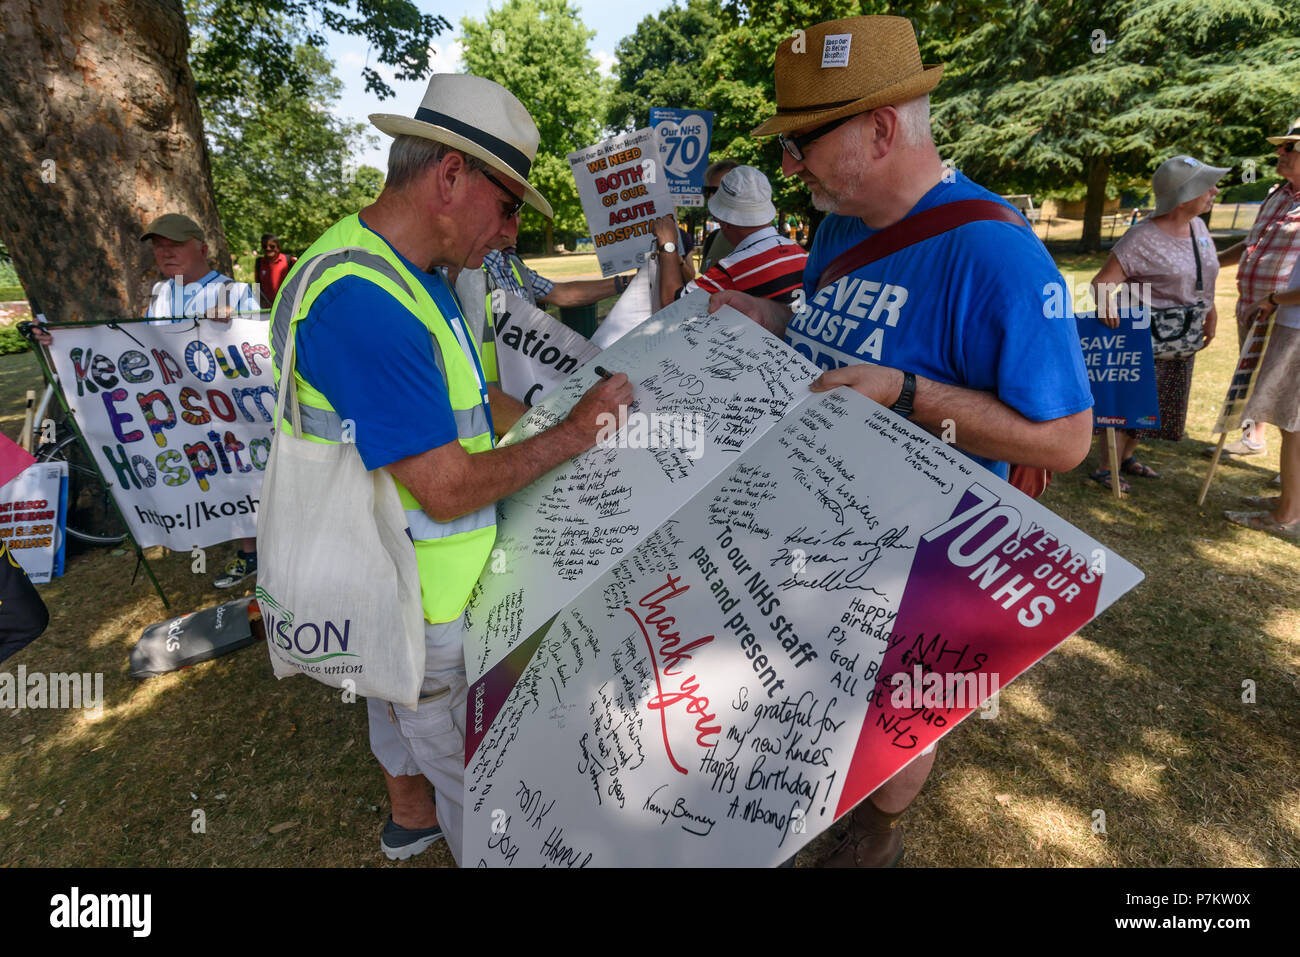 London, UK. 7th July 2018. Keep Our St Helier Hospital (KOSHH) campaigners against the closure of acute facilities at Epsom and St Helier Hospitals in south London sign a card for the 70th Birthday of the NHS before marching from Sutton to a rally in front of St Helier Hospital. The Epsom and St Helier Trust want to close A&E, Maternity, Paediatrics, Emergency Medicine and Surgery, Intensive Care, Coronary Care and the Cancer Centre at one or both hospitals and sell off the sites. Credit: Peter Marshall/Alamy Live News - Stock Image